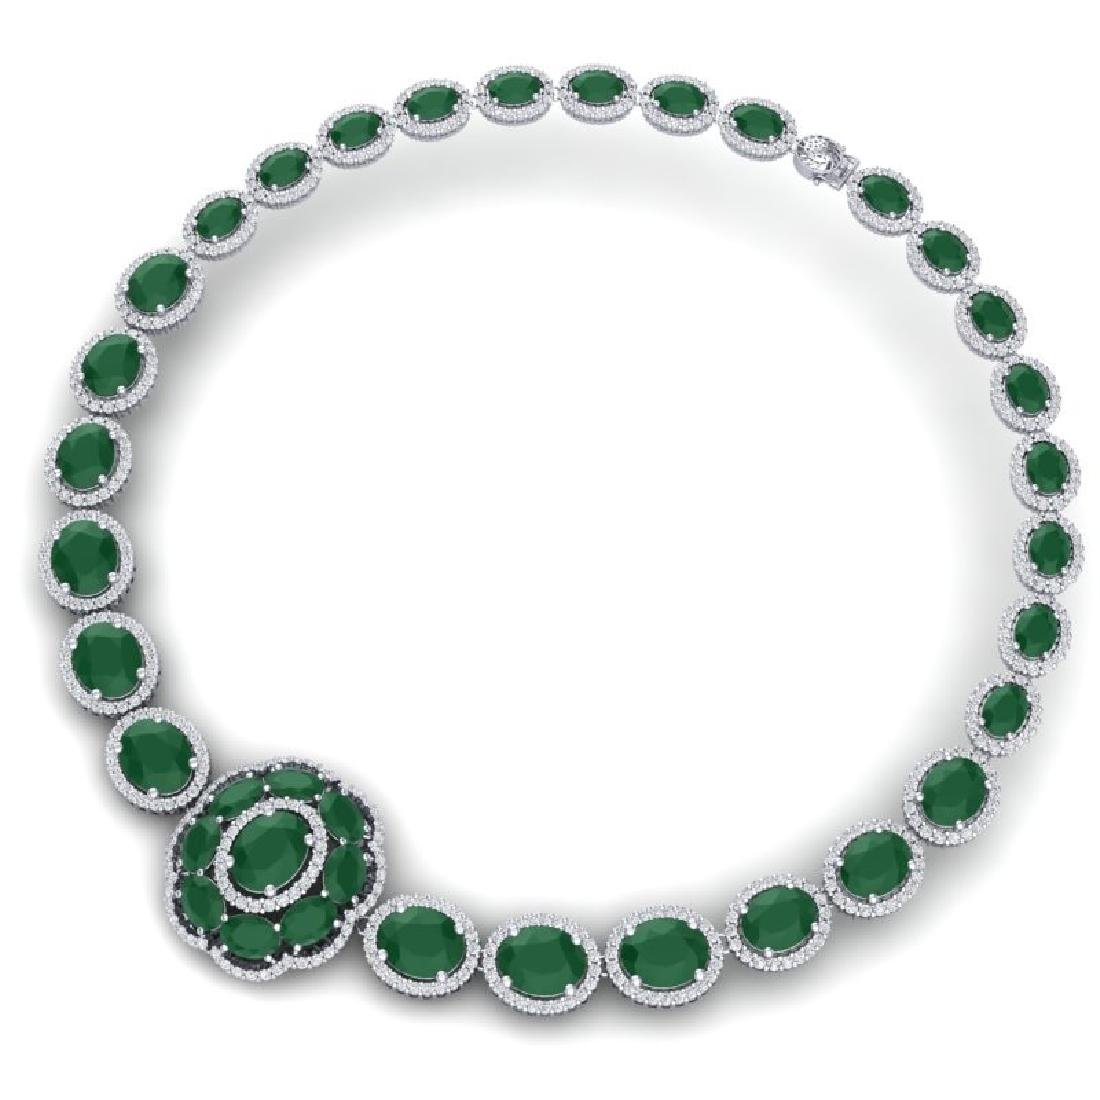 58.33 CTW Royalty Emerald & VS Diamond Necklace 18K - 3